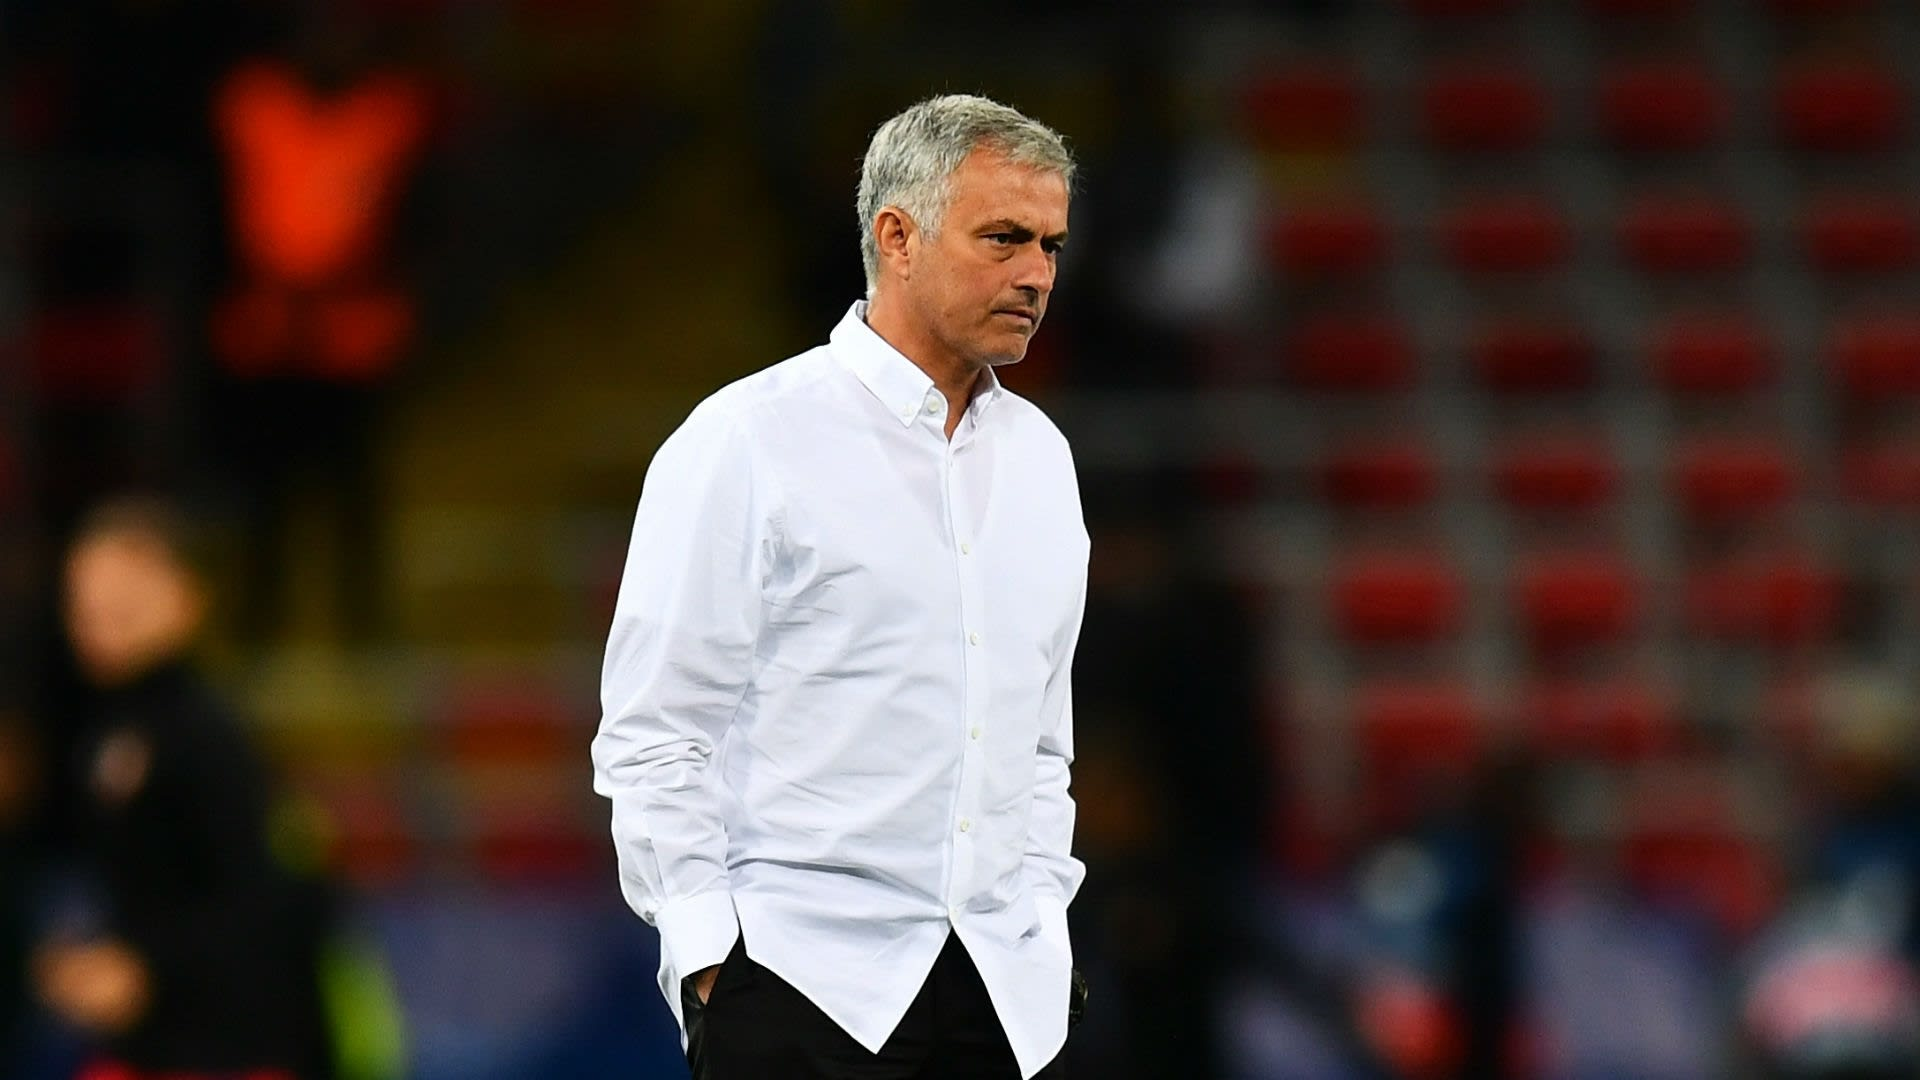 Jose Mourinho of Manchester United